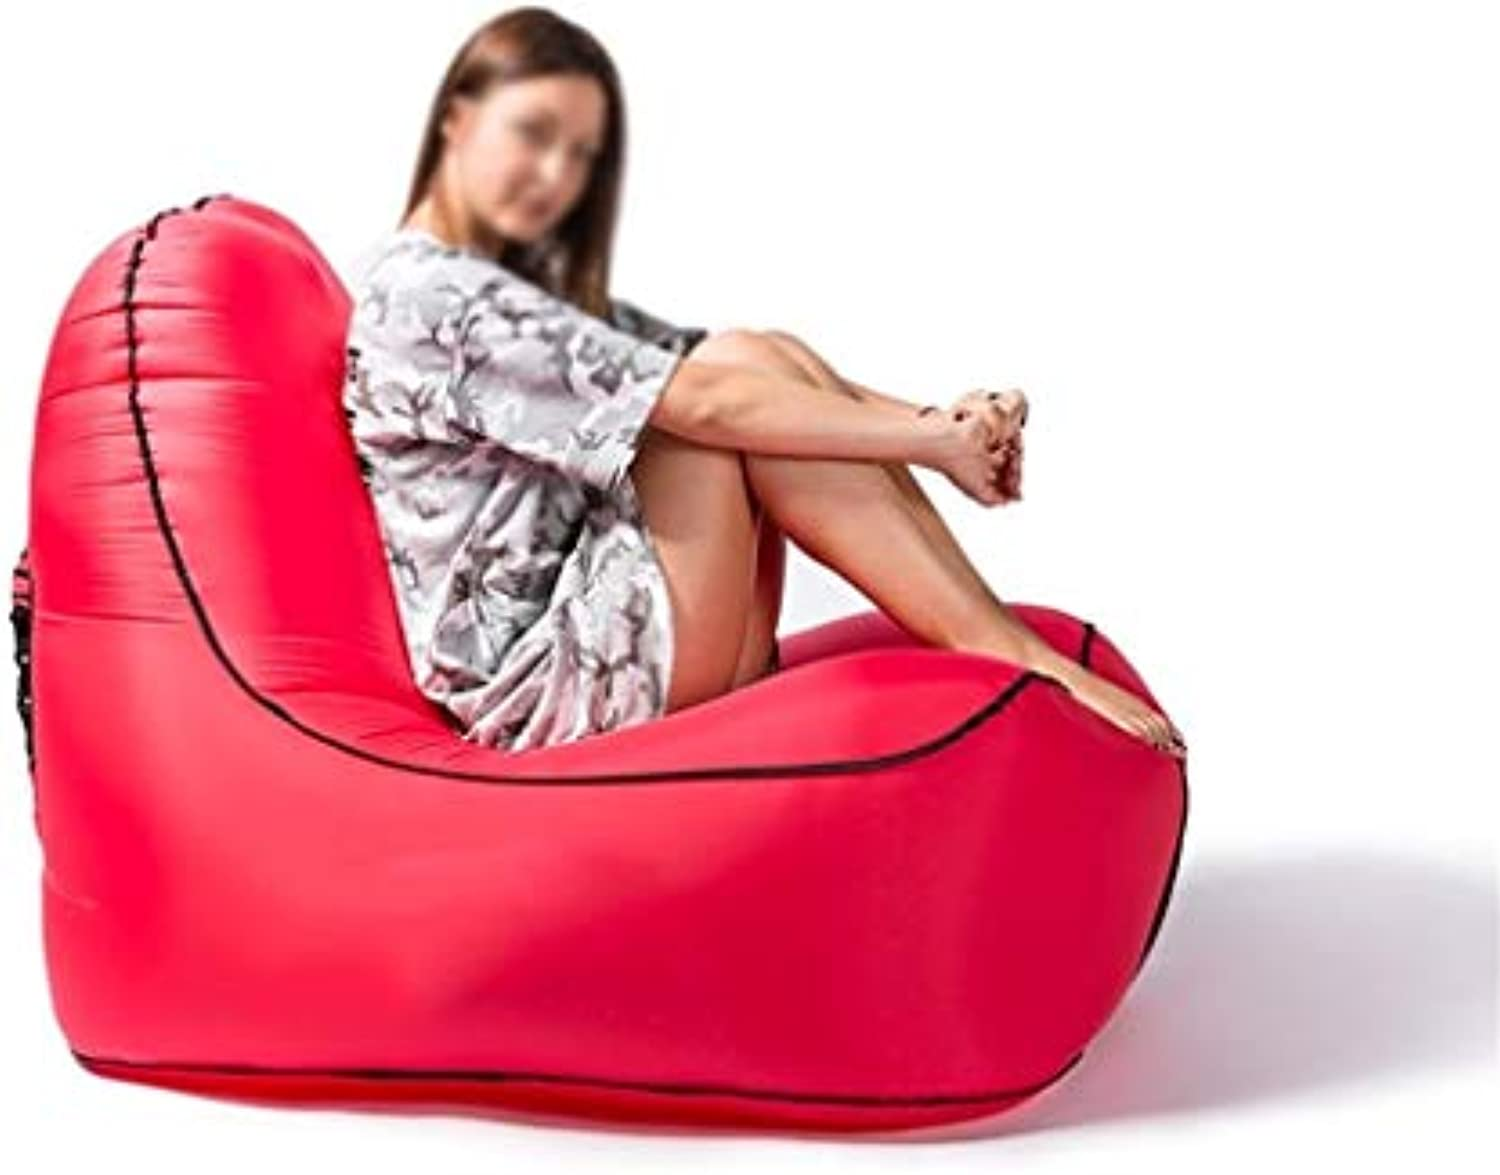 JGWJJ Inflatable Lounger, Waterproof Air Lounger with Thicker Fabric, Portable Lazy Lounger Inflatable Sofa Couch, Outdoor Sofa for Camping, Hiking, Swimming Pool, Beach (color   Red)